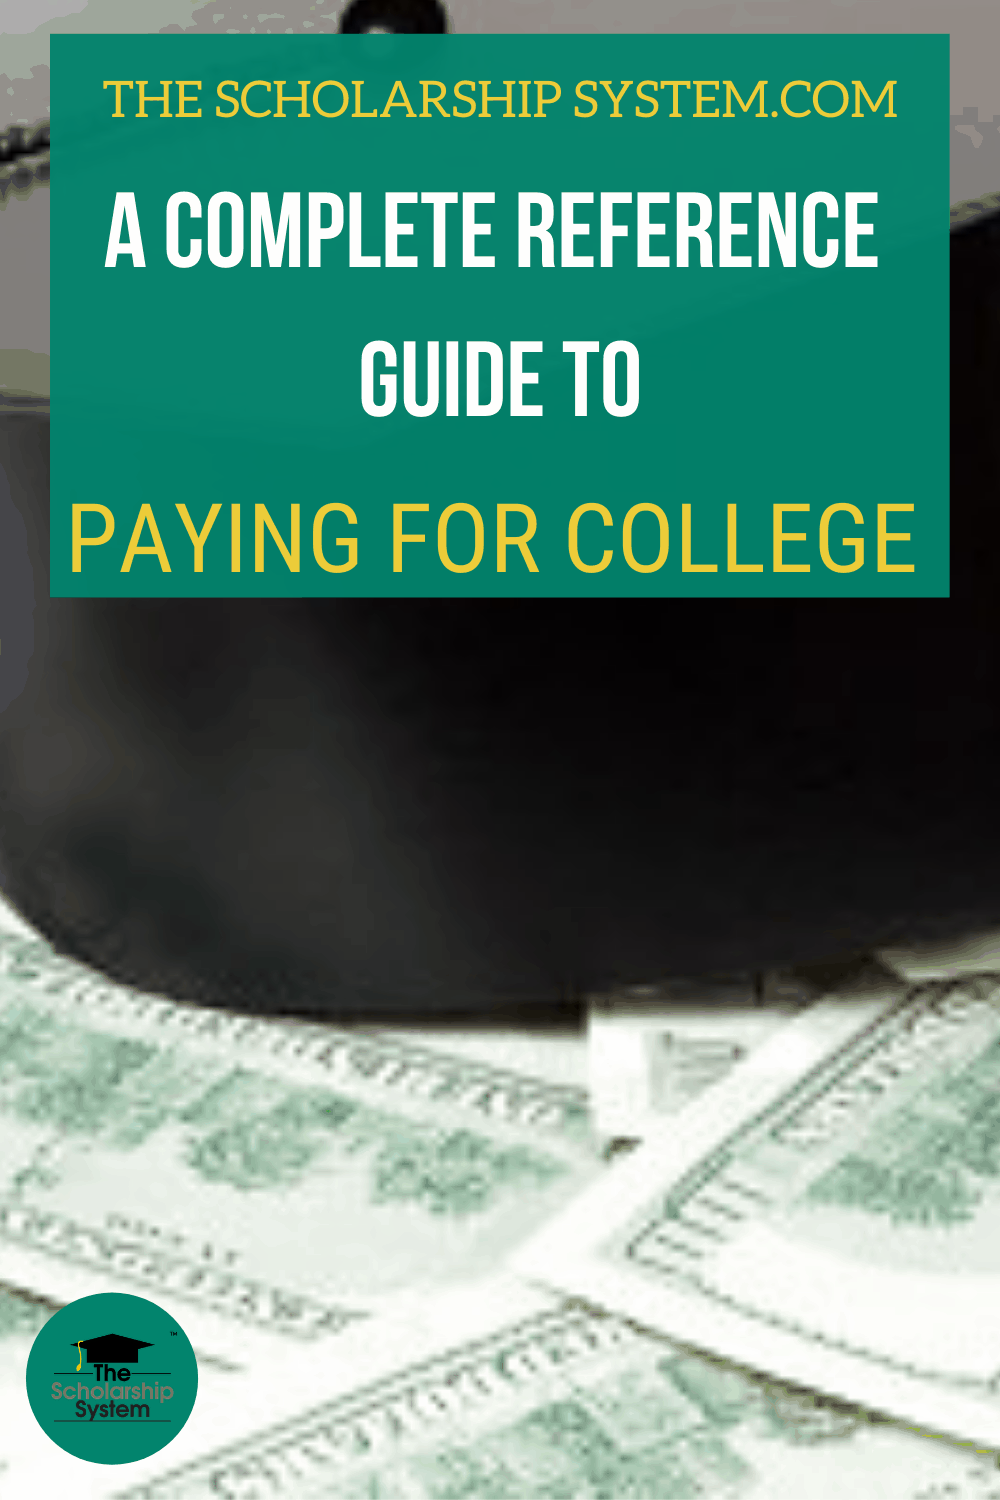 A complete reference guide on how to pay for college: FAFSA, financial aid, scholarships, student loans, and all the key terms you need to know